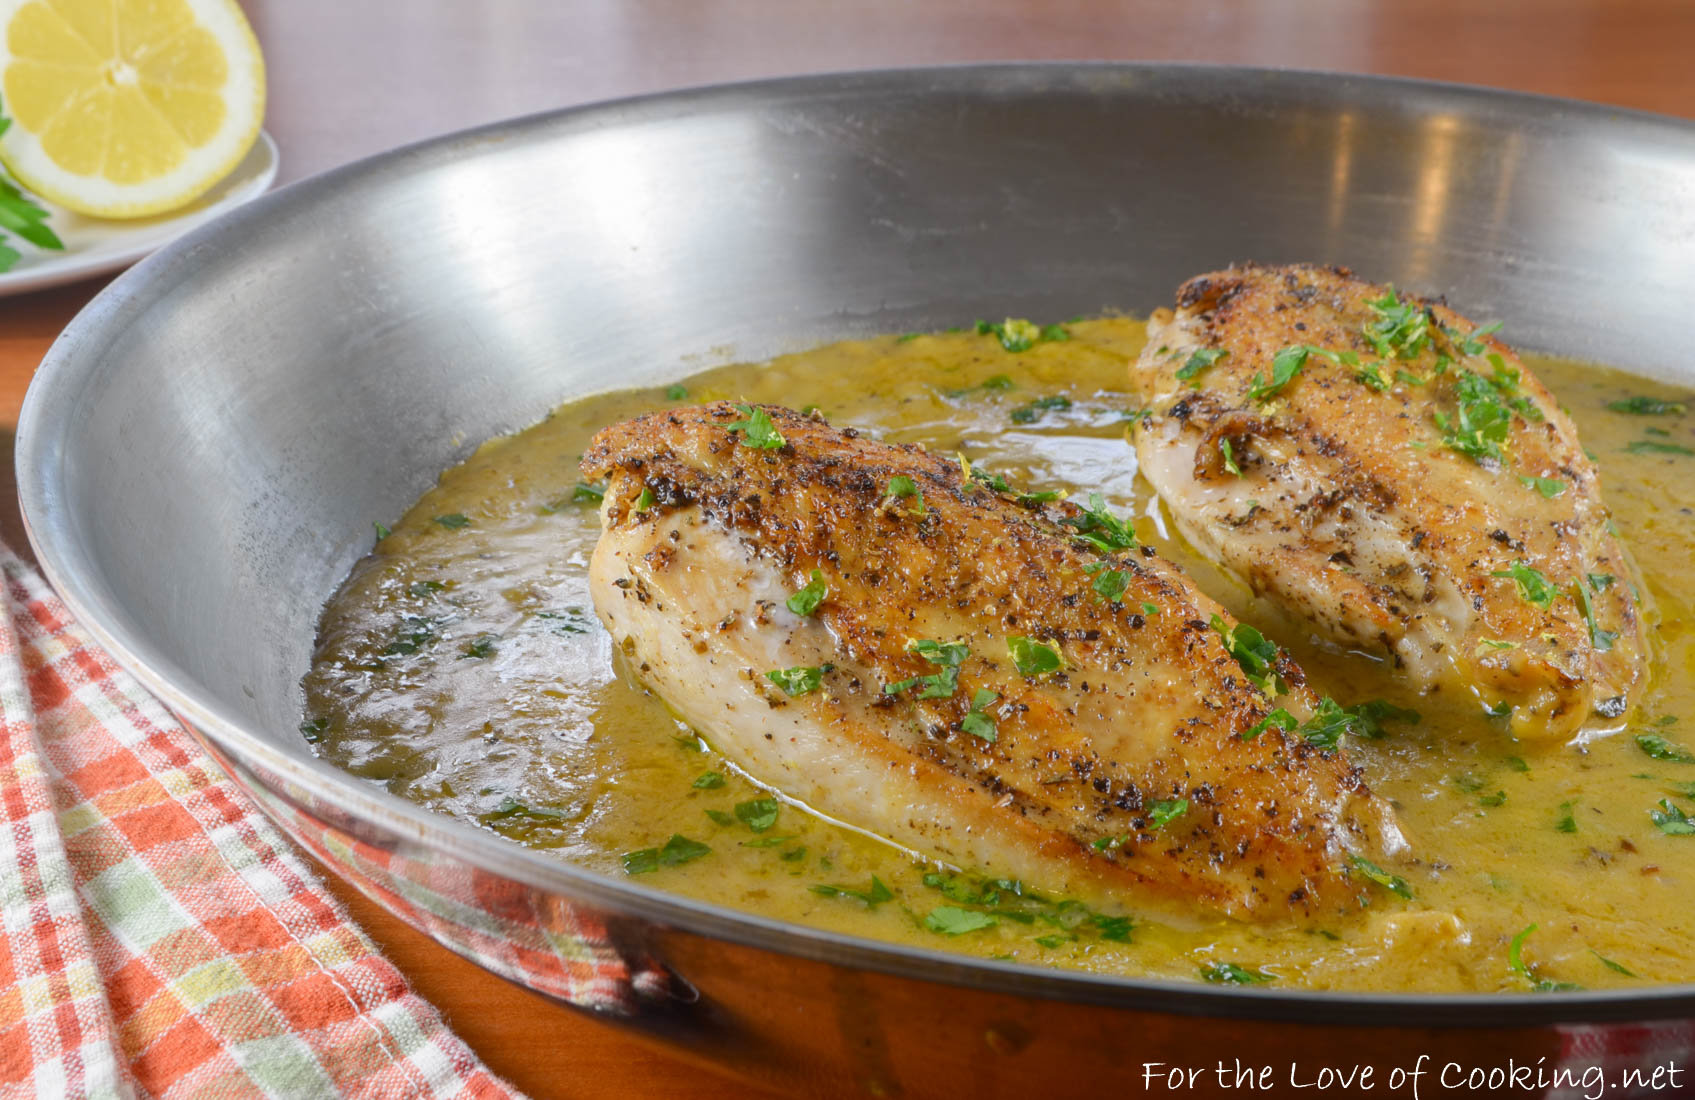 Skillet-Roasted Chicken Breasts in Lemon Sauce